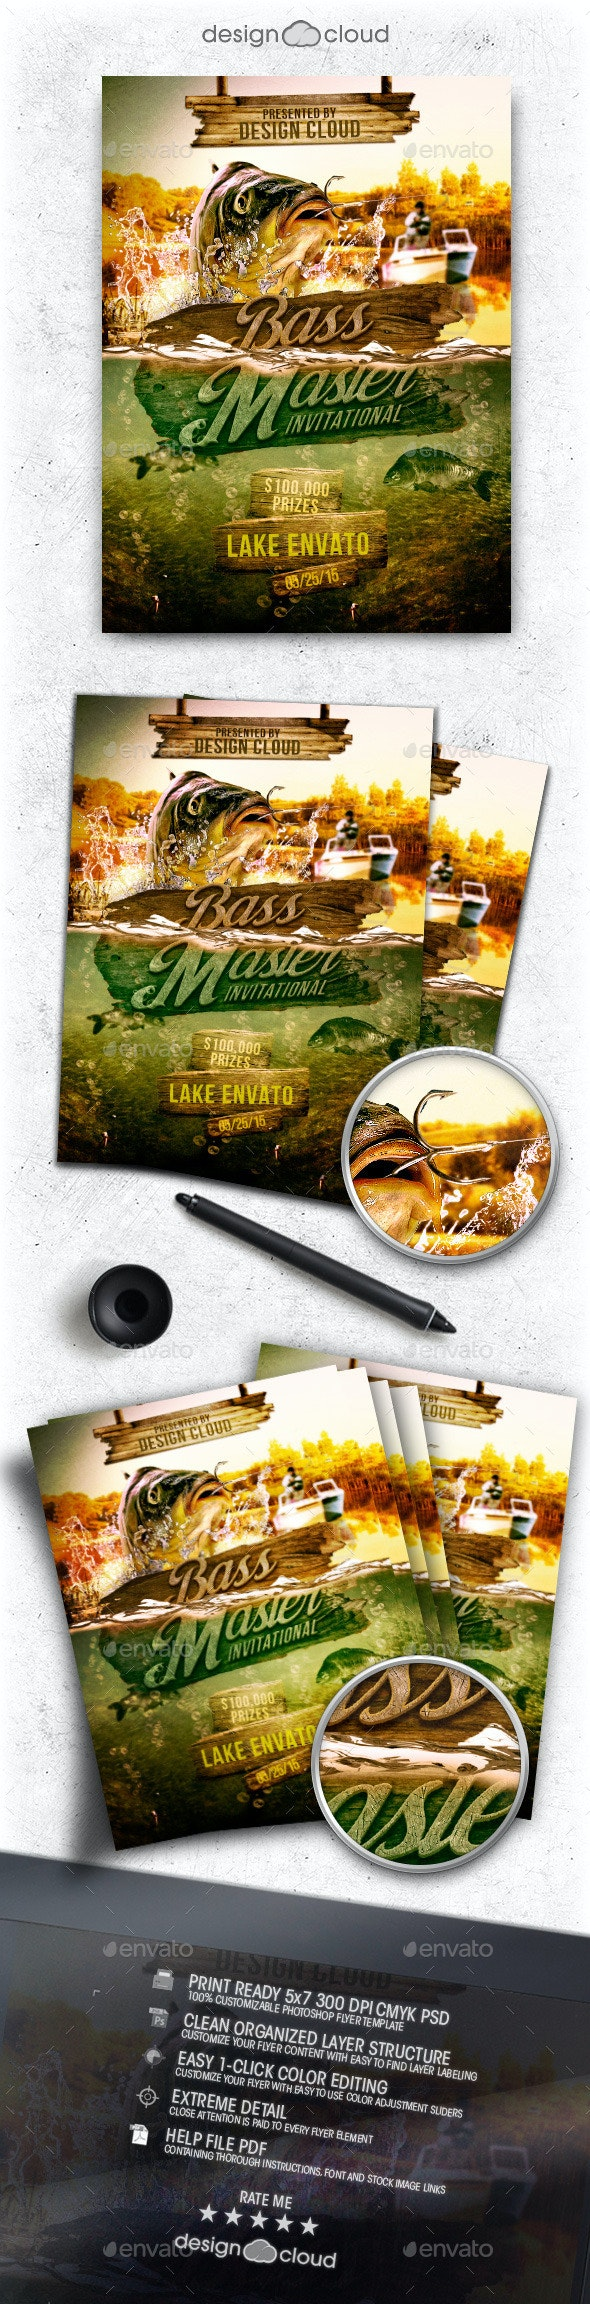 Bass Masters Fishing Tournament Flyer Template - Sports Events